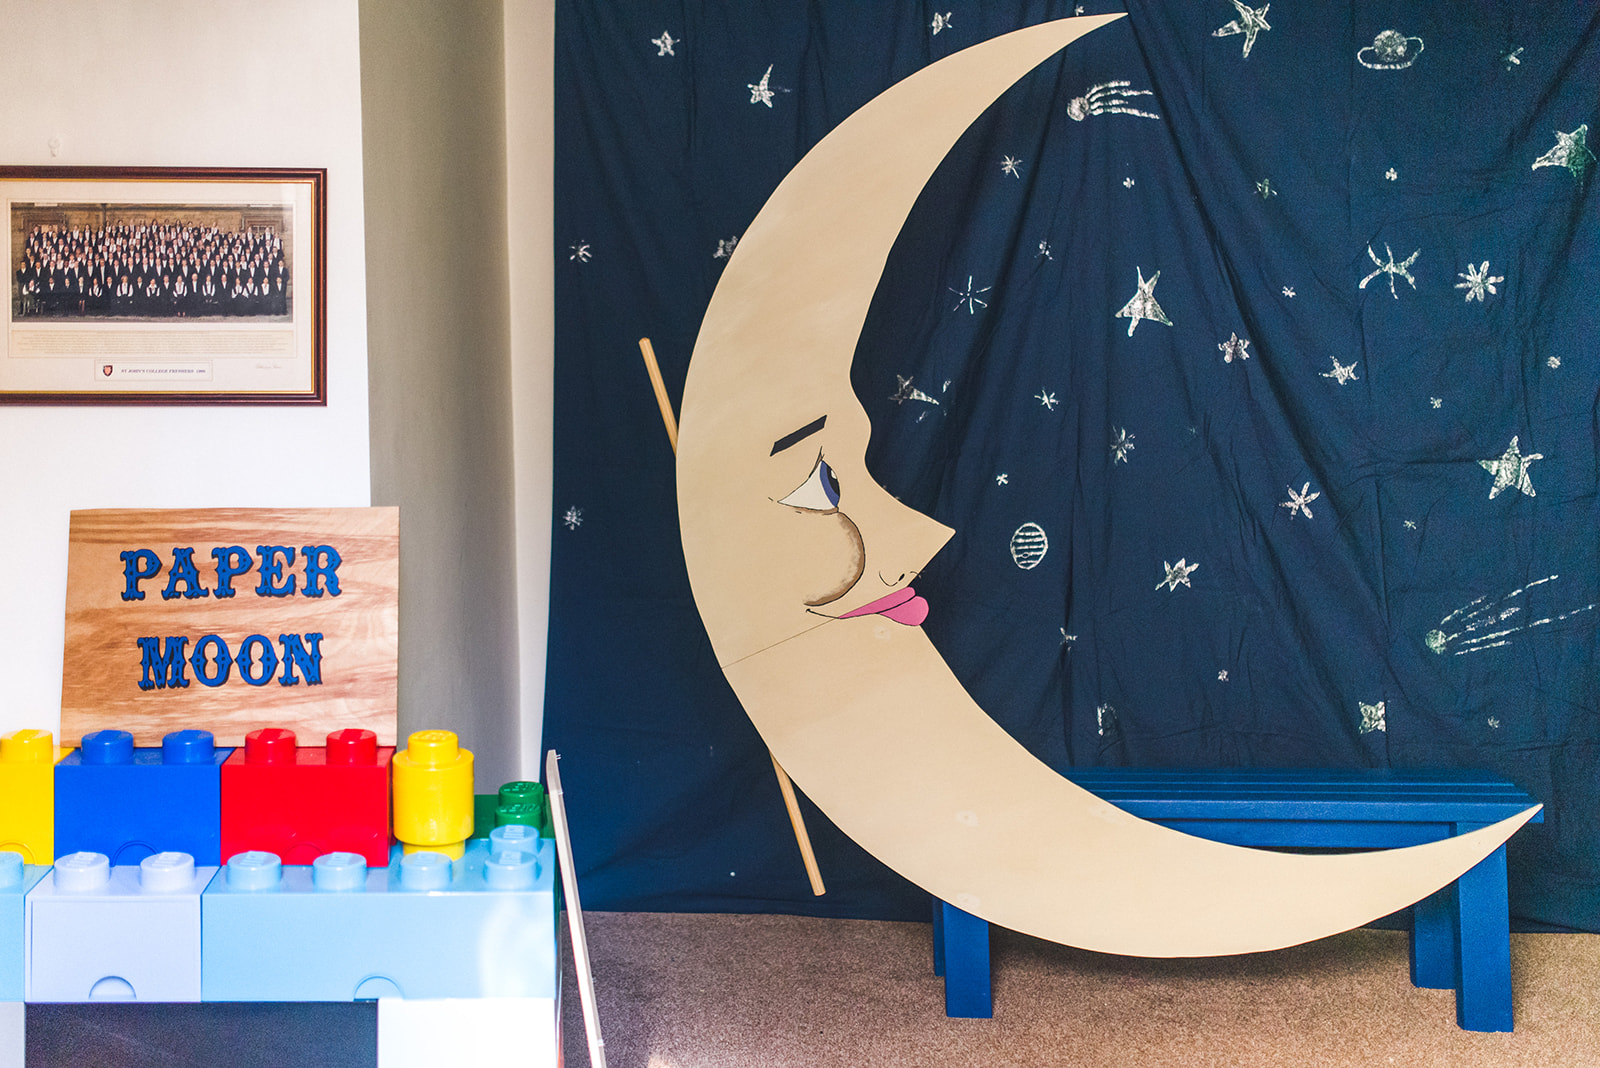 DIY Wedding photo booth - paper moon photo booth - fun wedding ideas